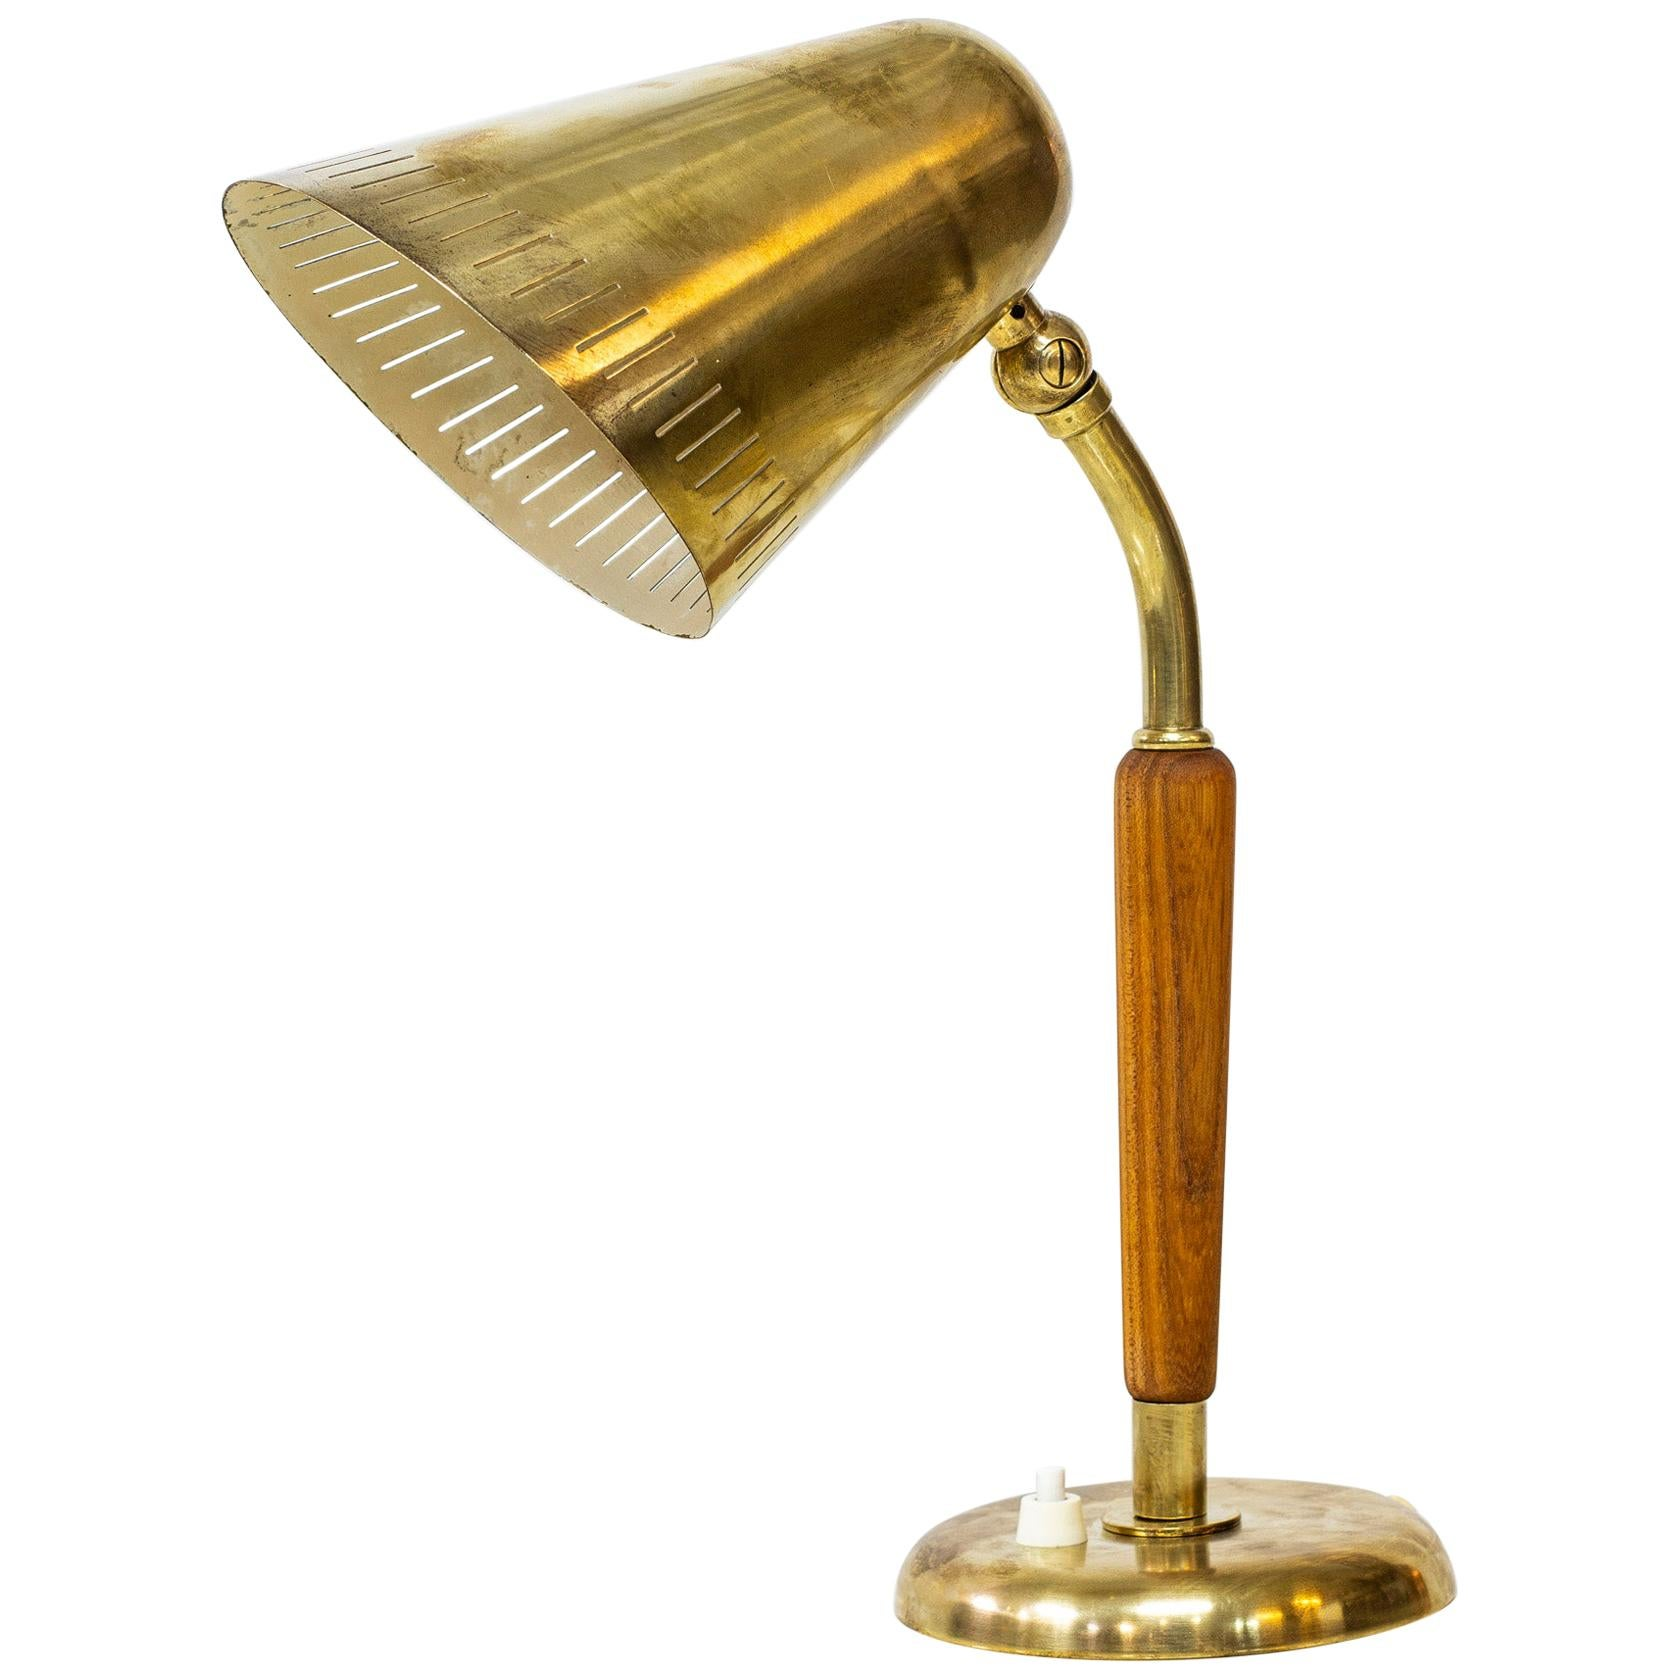 Brass Table Lamp by Harald Elof Notini for Böhlmarks, Sweden, 1940s